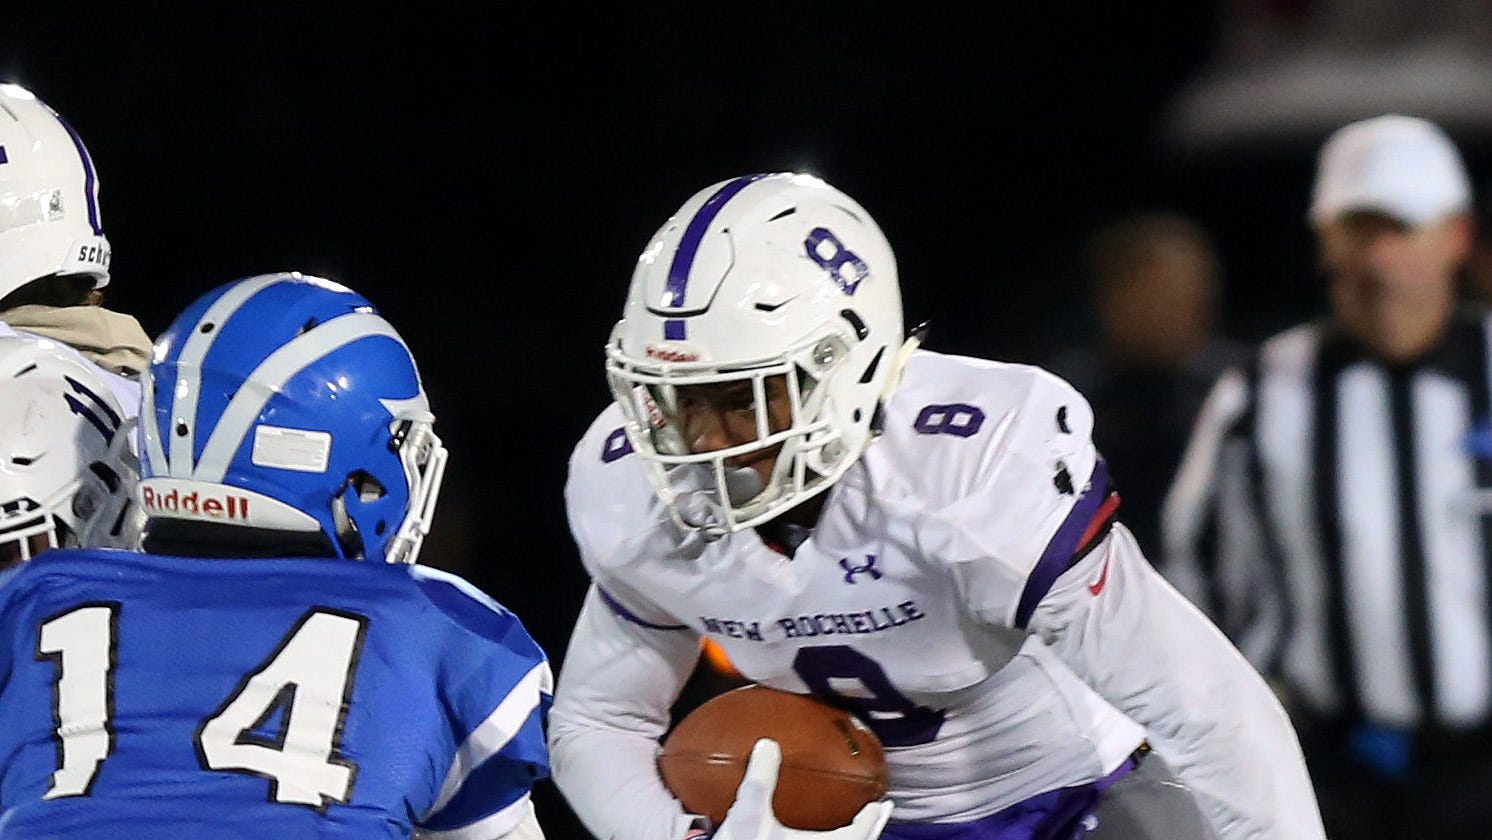 New Rochelle's Jordan Forrest (8) looks for some running room in the Shaker defense during the state Class AA semifinal game at Middletown High School Nov. 17, 2018.